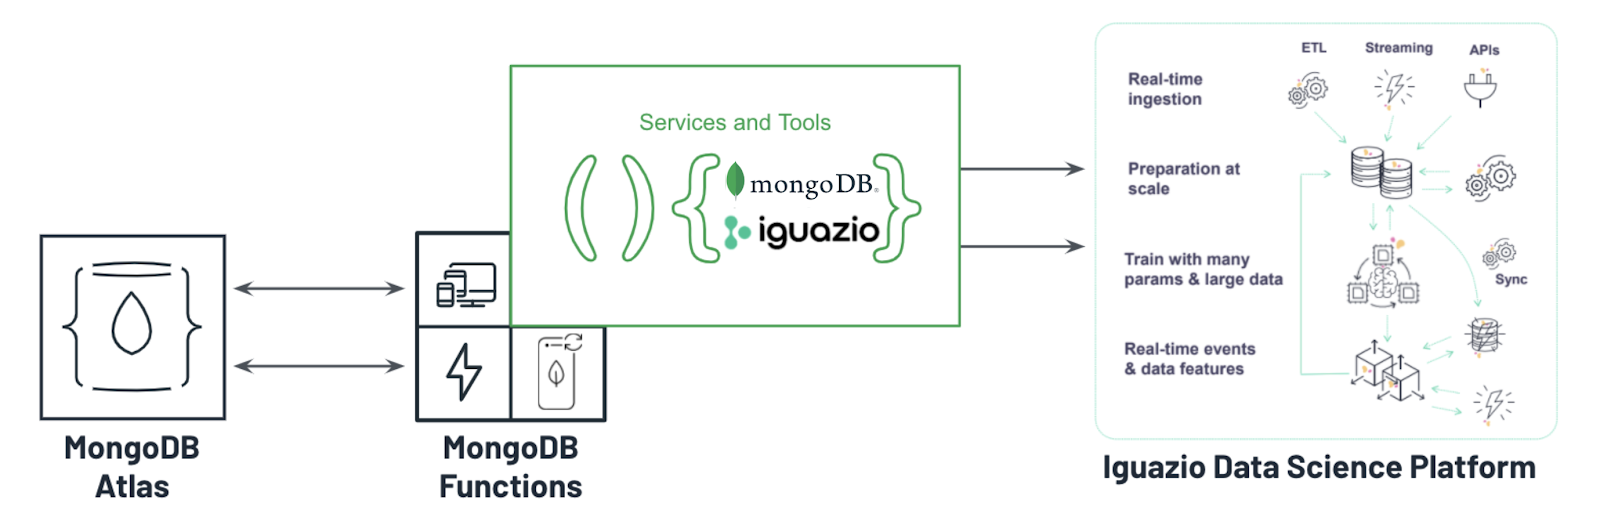 Iguazio and MongoDB data science platform